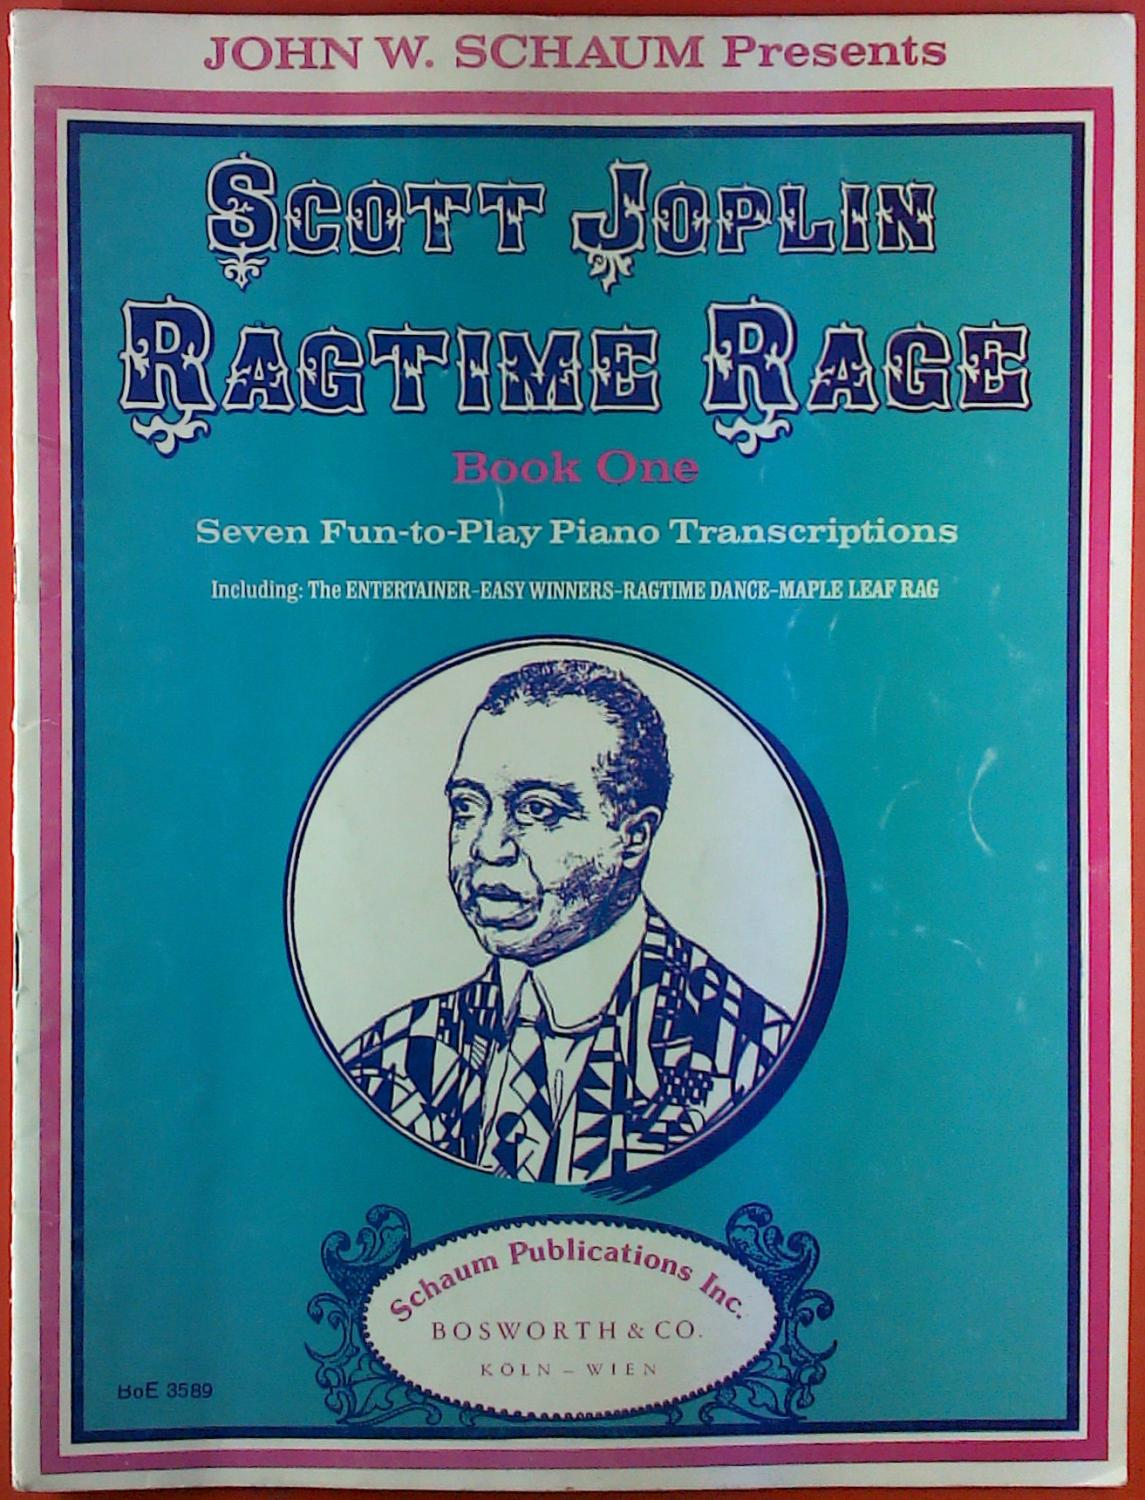 Types of ragtime dances